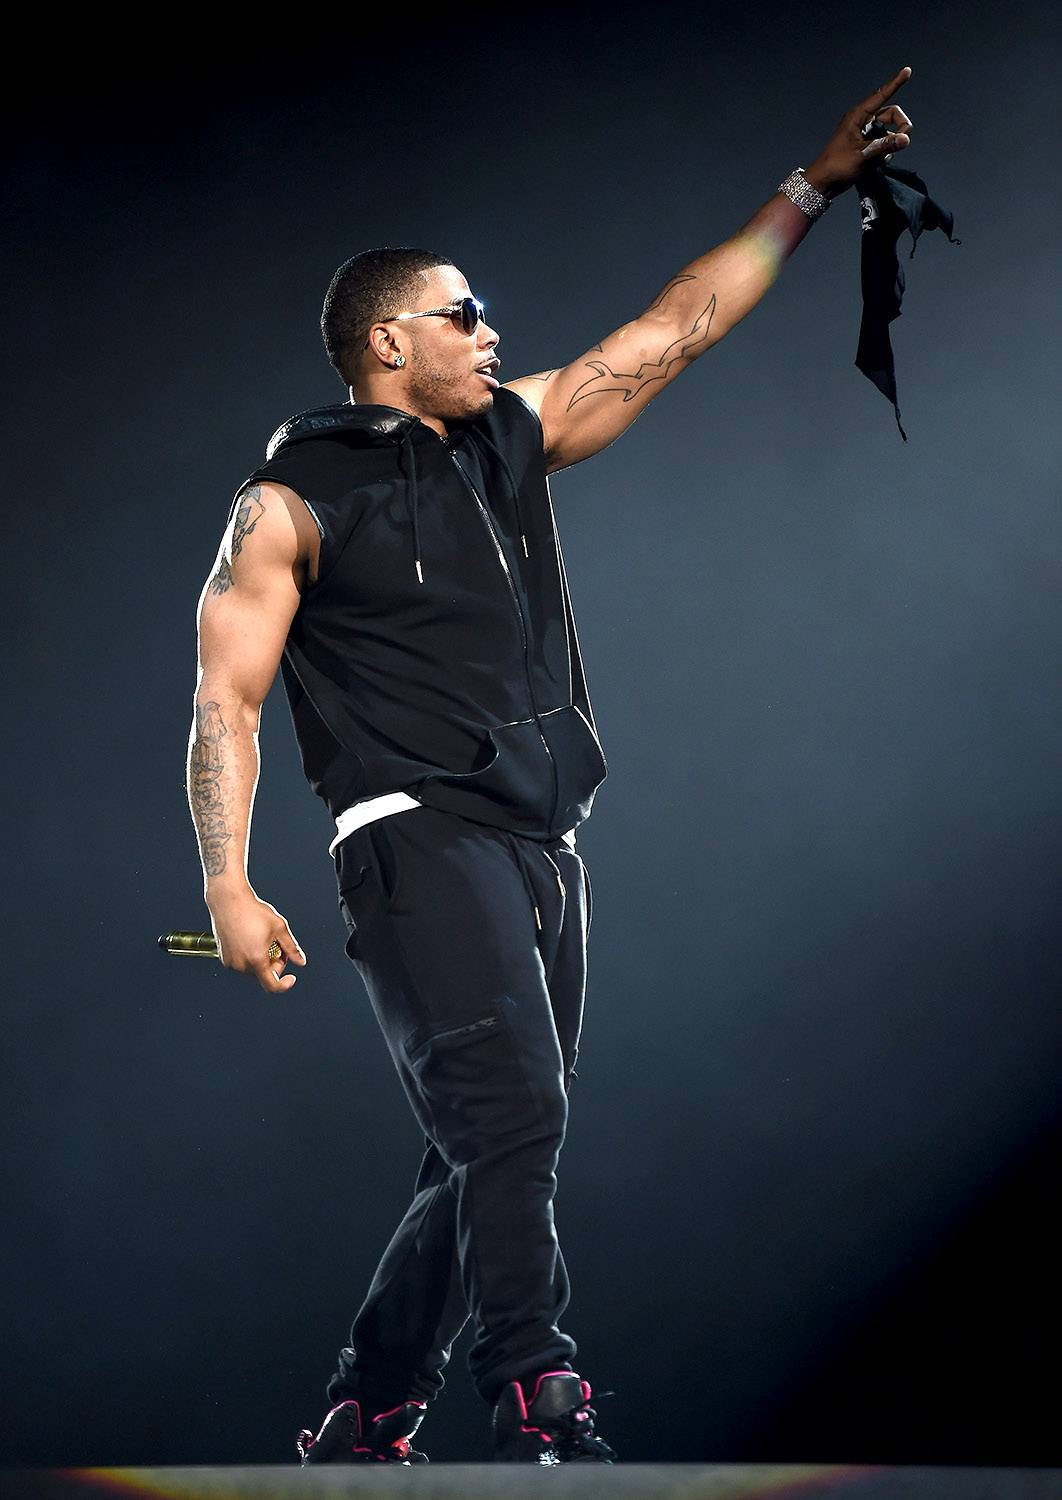 Nelly - The MC calls St. Louis his home, but the army brat was born in Austin, Texas. (Photo: Ethan Miller/Getty Images)